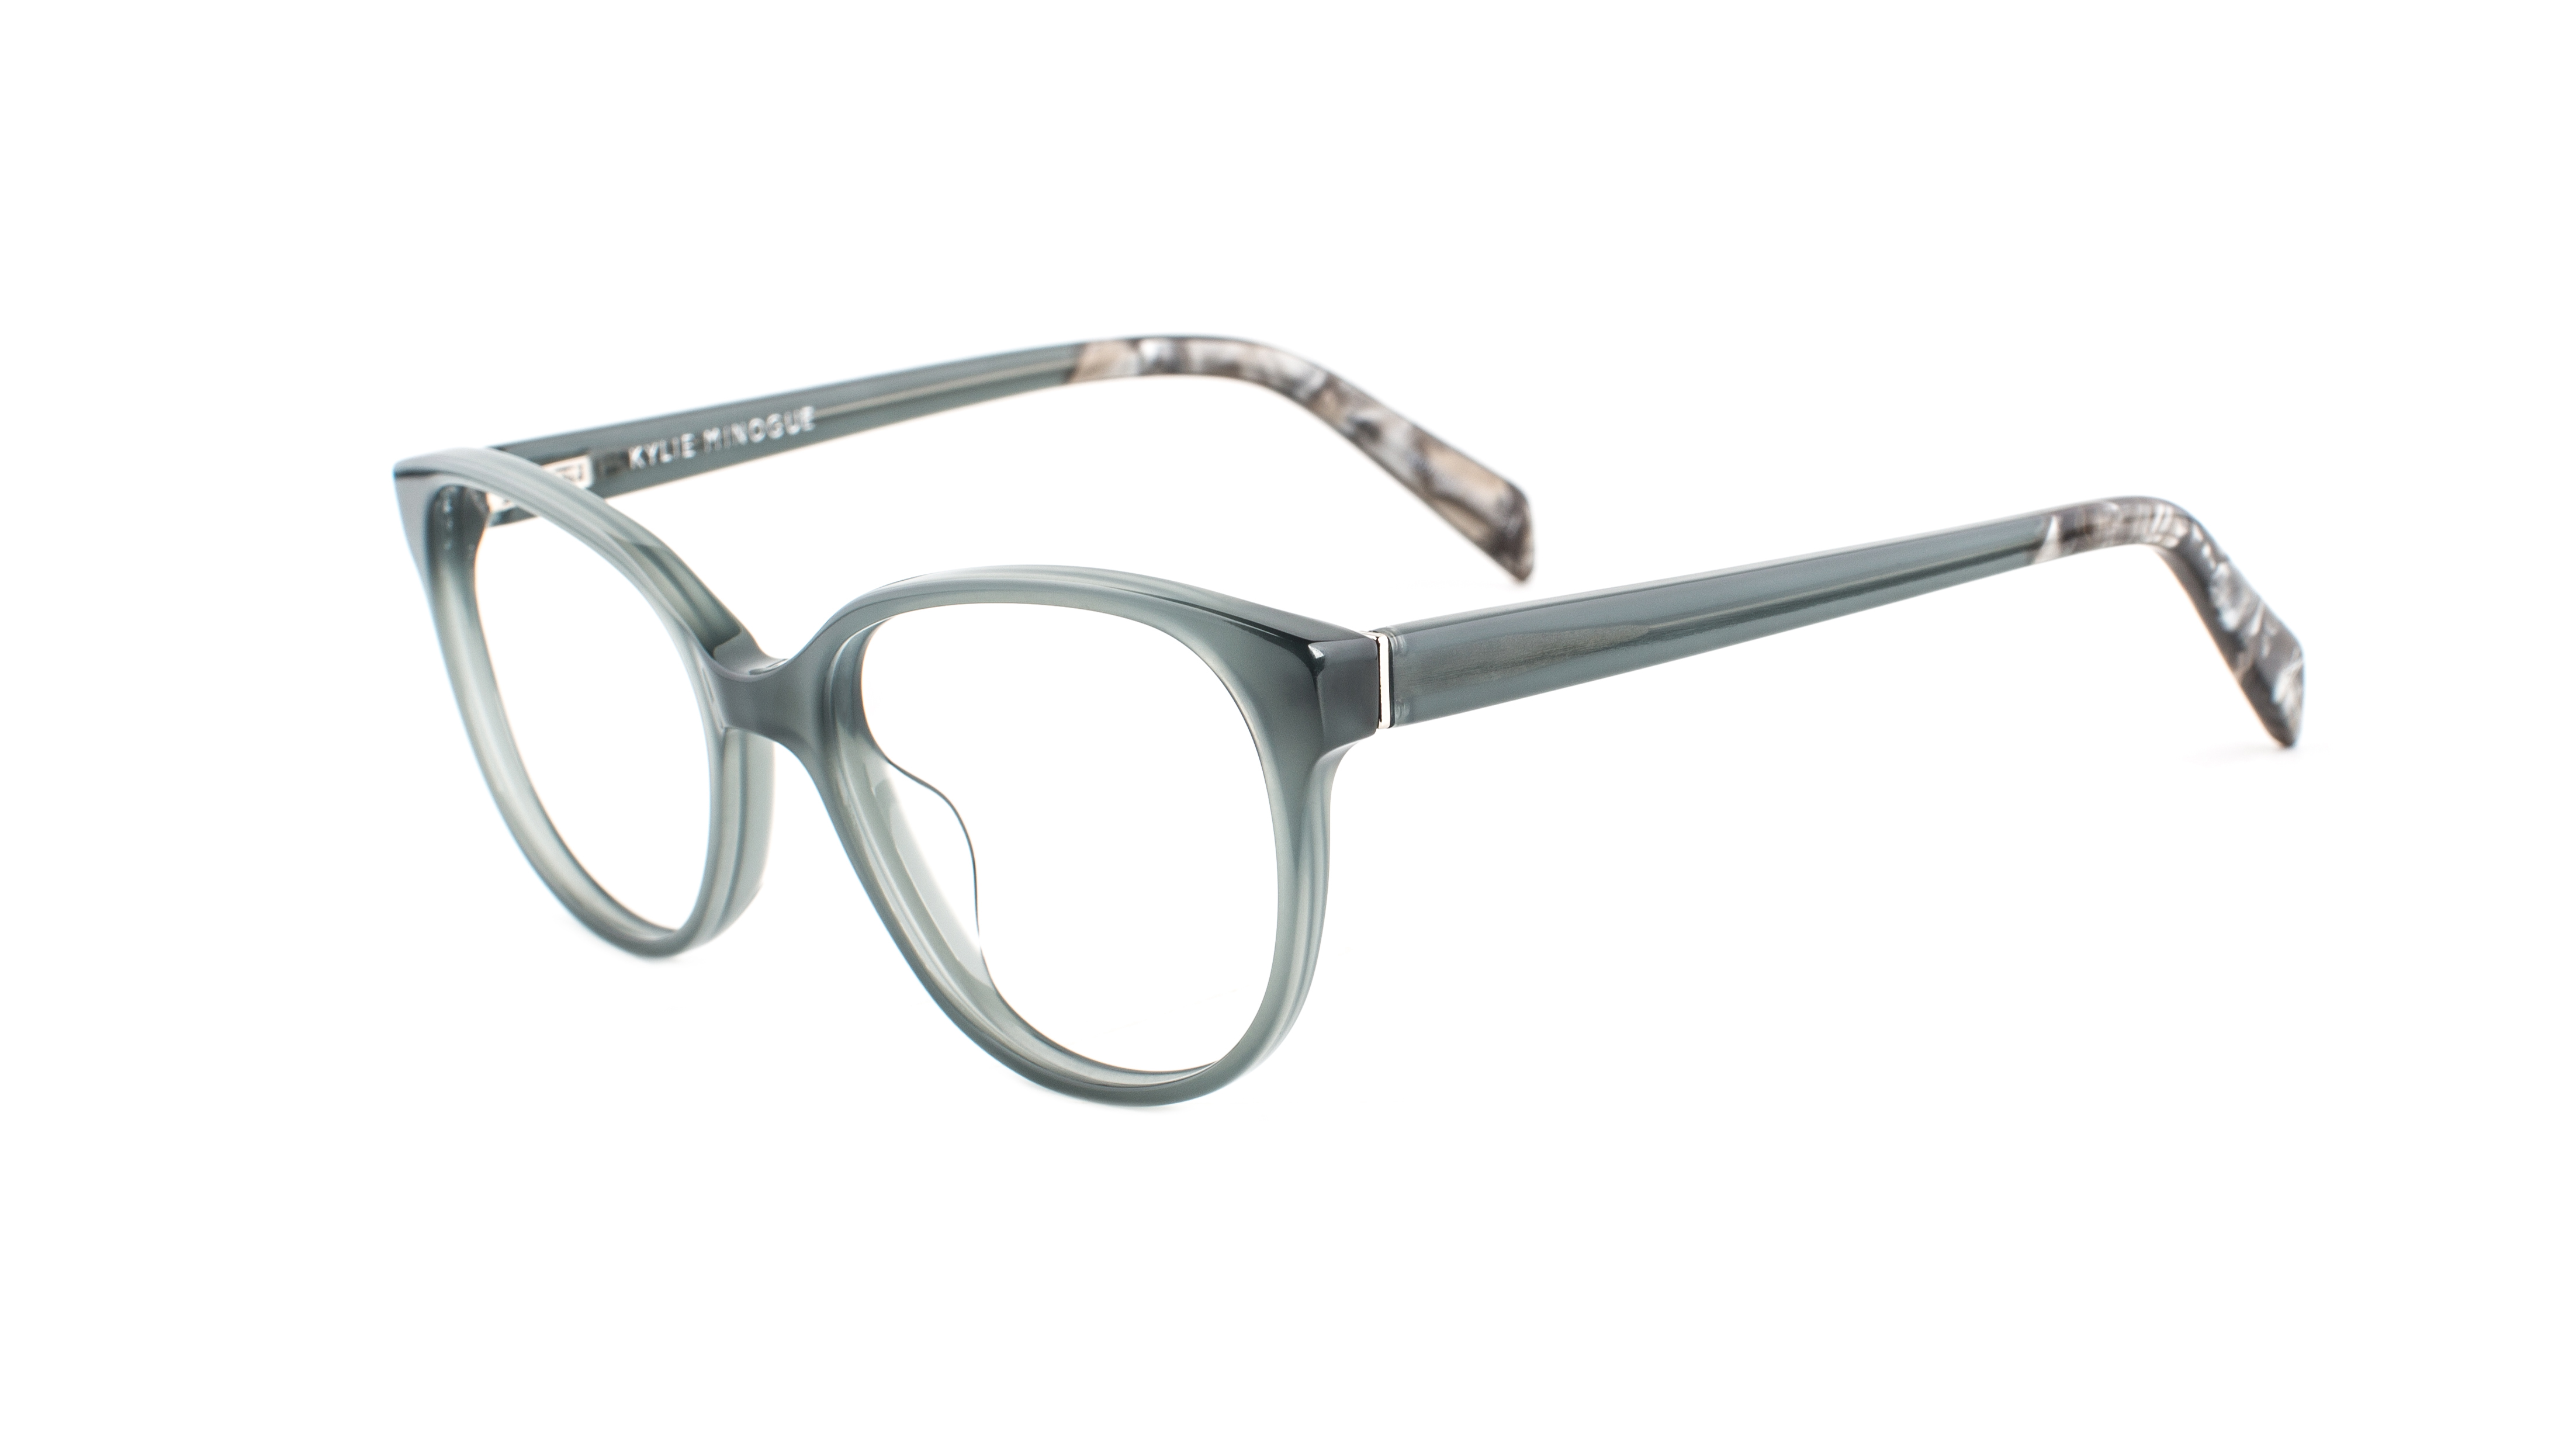 Kylie Minogue Eyewear_Kylie 11_SKU 30520257_RRP 2 pairs from $369 (2)